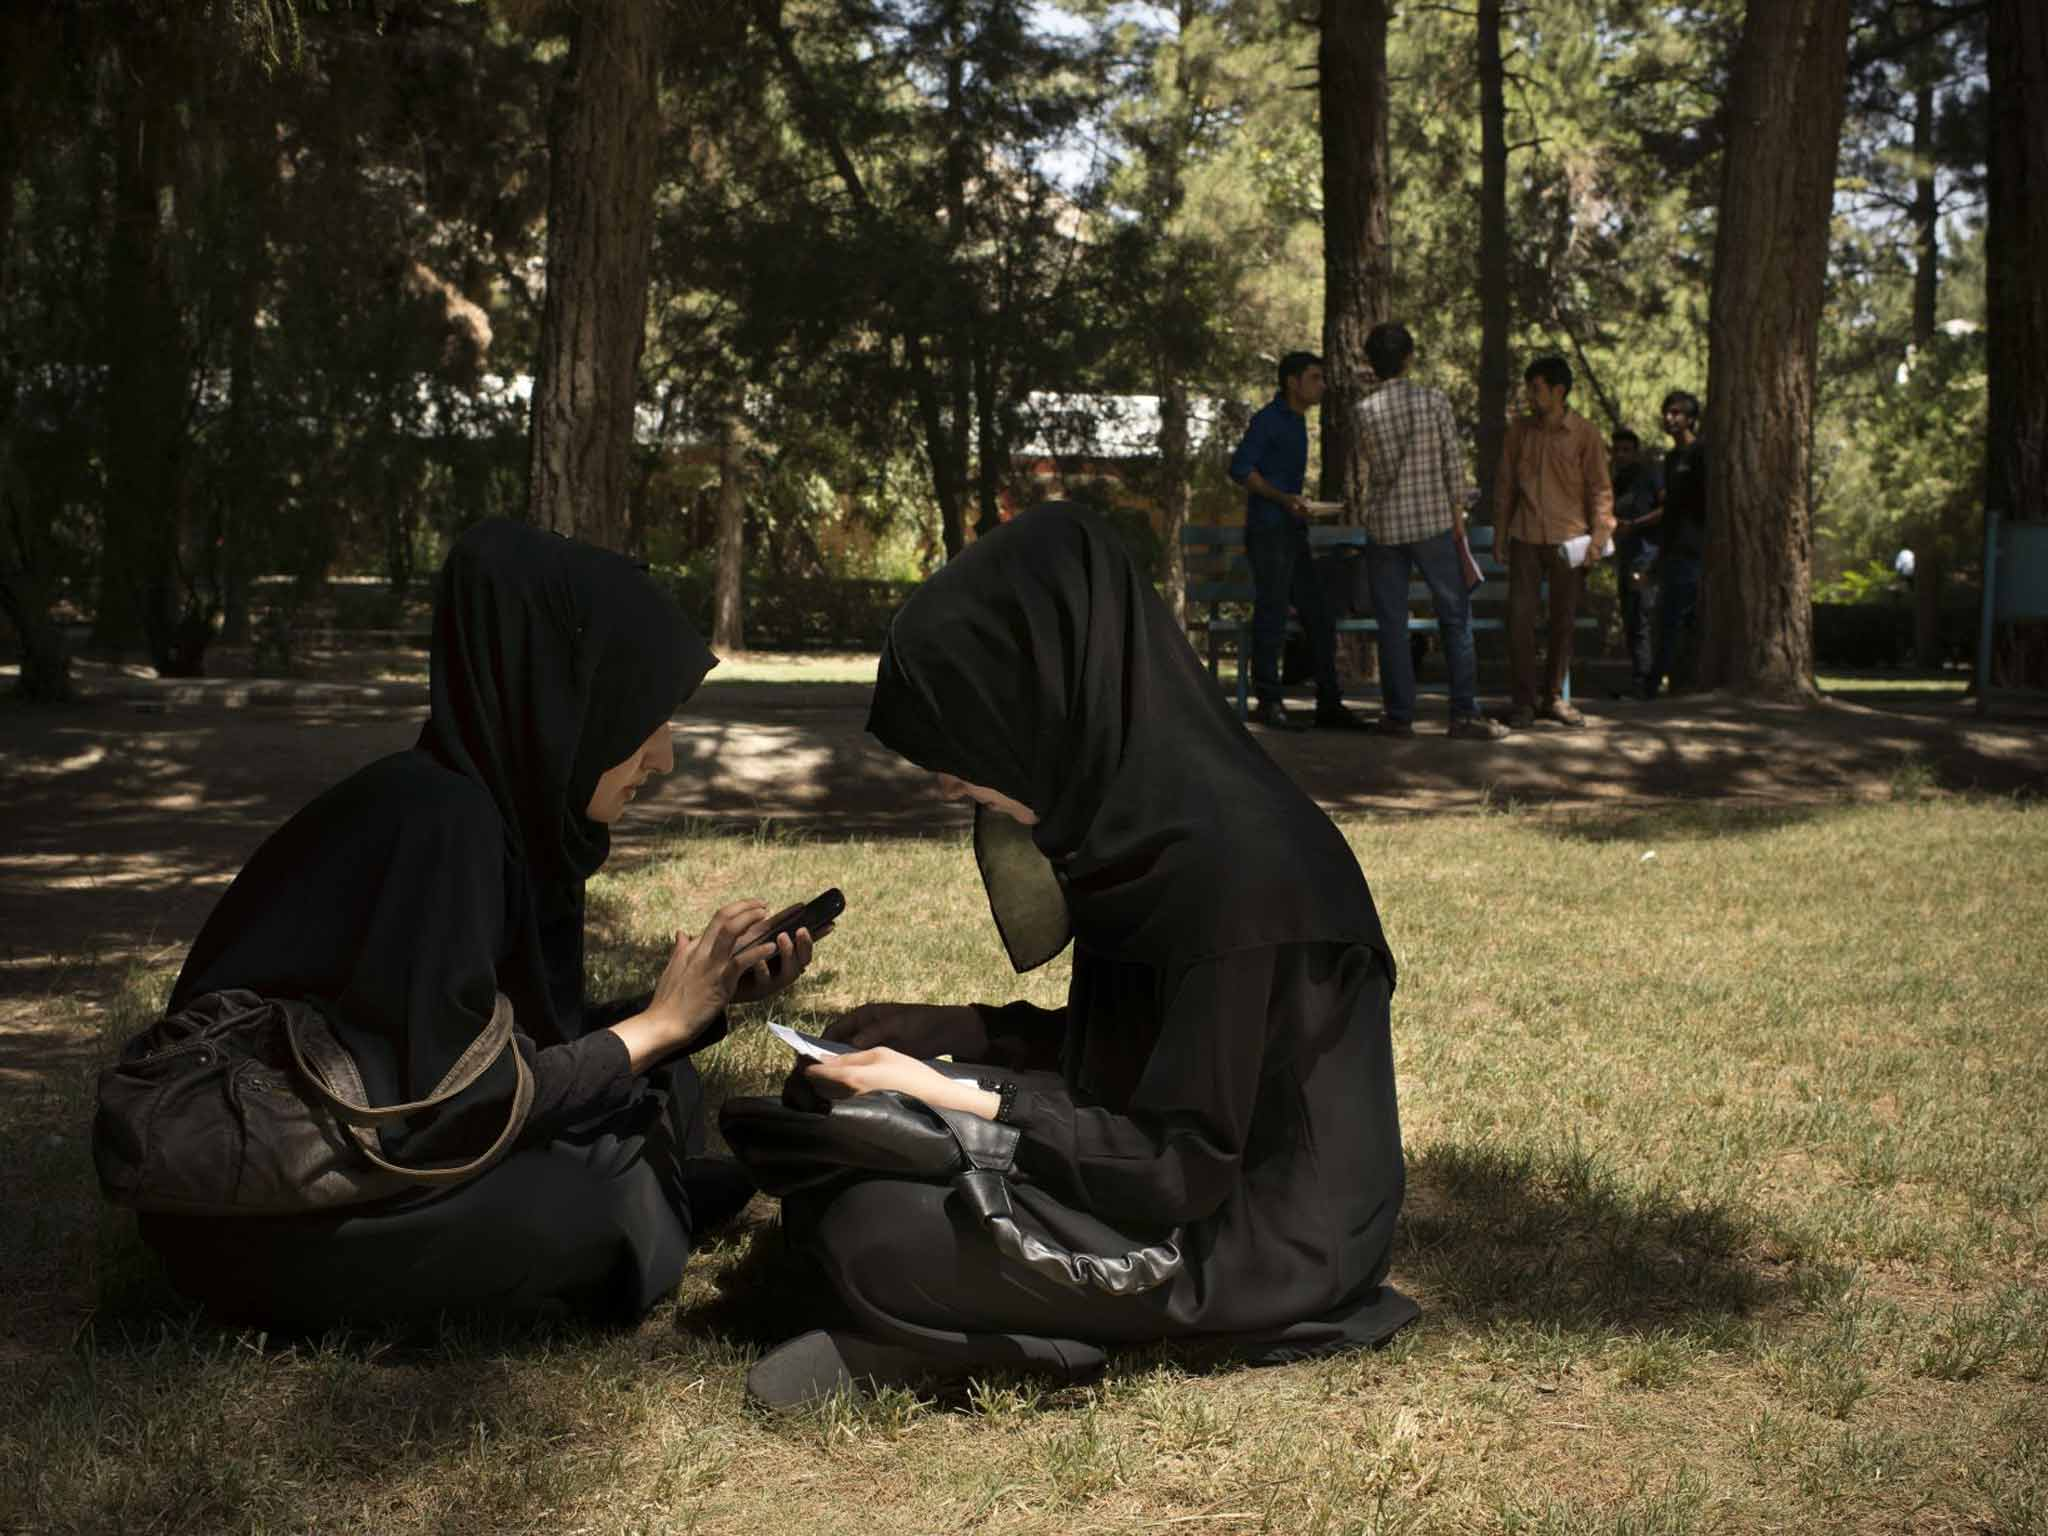 How social media is empowering young Afghan women  The Facebook effect   The Independent